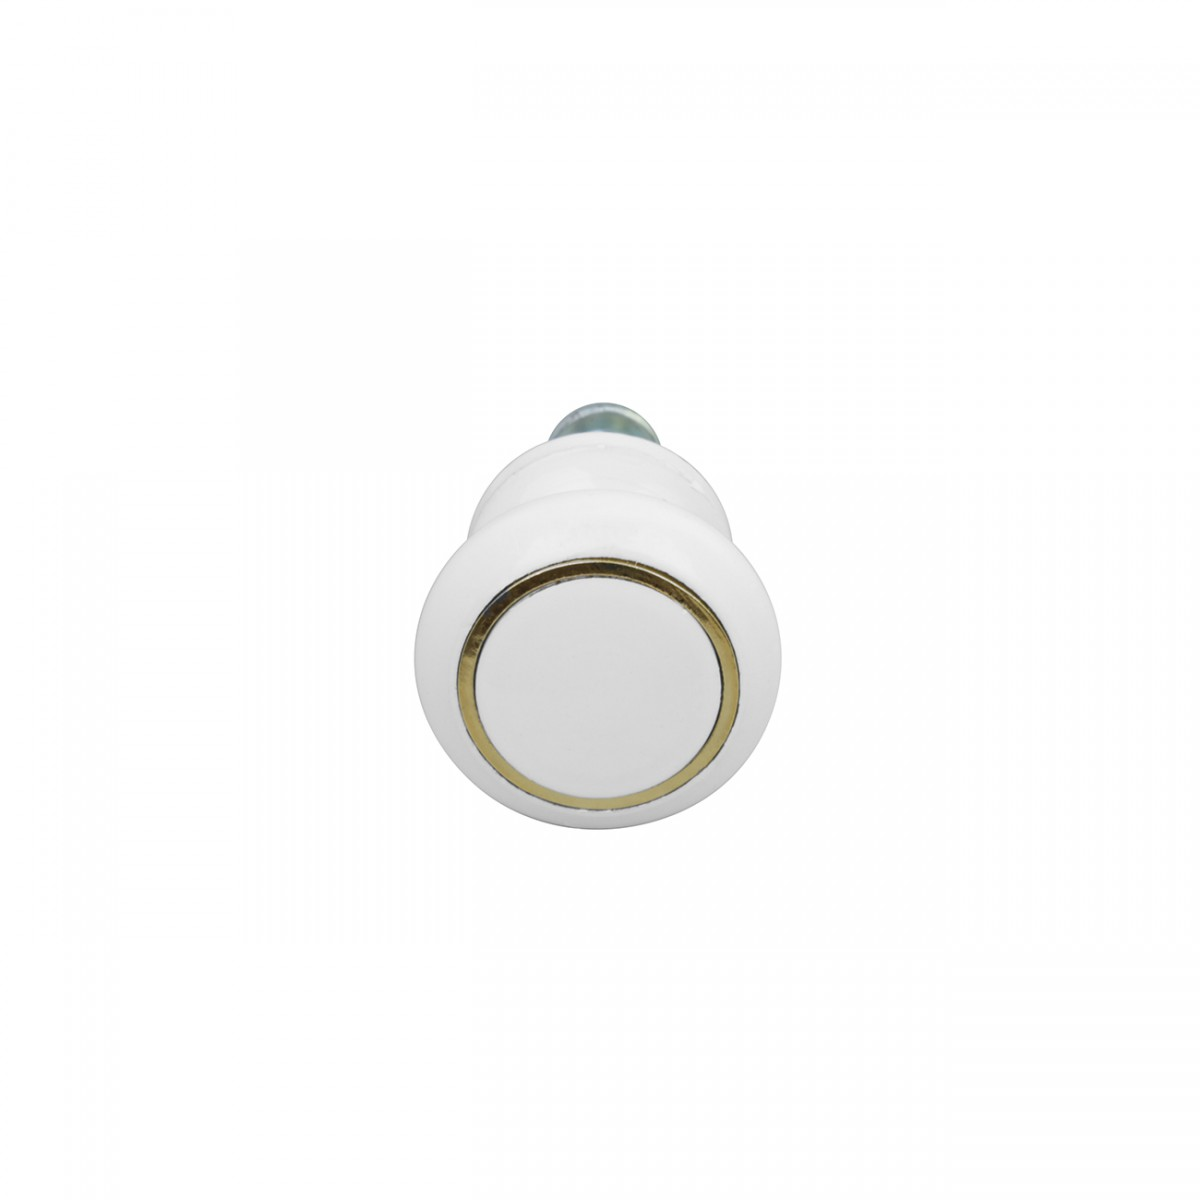 Cabinet Knobs White Enamel Over Solid Brass 1 Inch diameter 5 Pack Cabinet Knobs White Cabinet Knobs And Pulls Cabinet Knobs